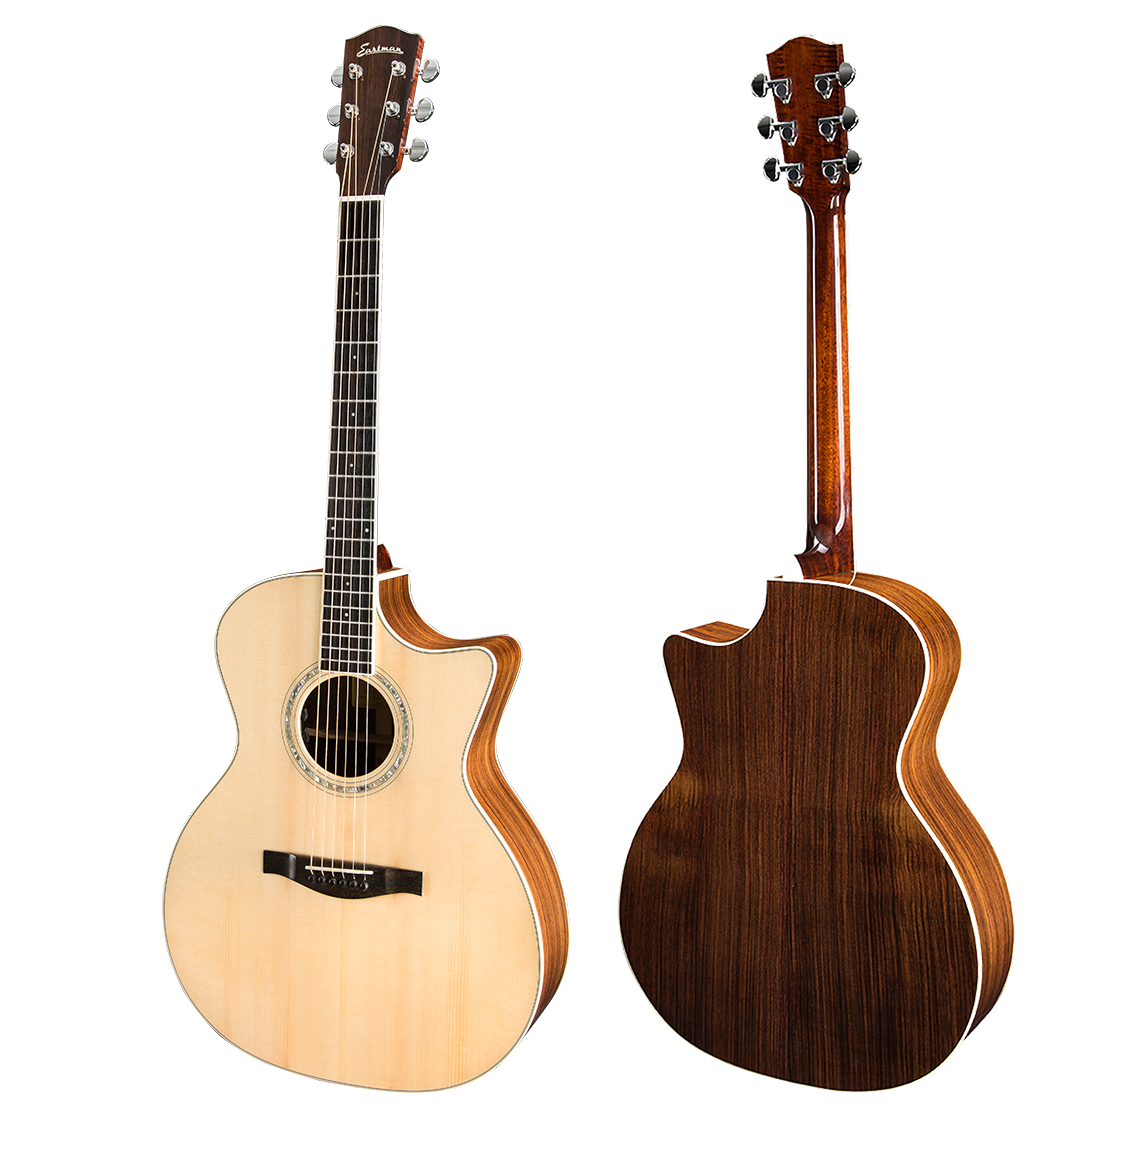 #FREE #GEAR! #Win a beautiful #Acoustic #Guitar! #RT #Retweet #Contest #Giveaway #Guitarist #Musician    ENTER AT:  http:// swee.ps/ulNrnAGyW  &nbsp;  <br>http://pic.twitter.com/LtGP7sgf4v